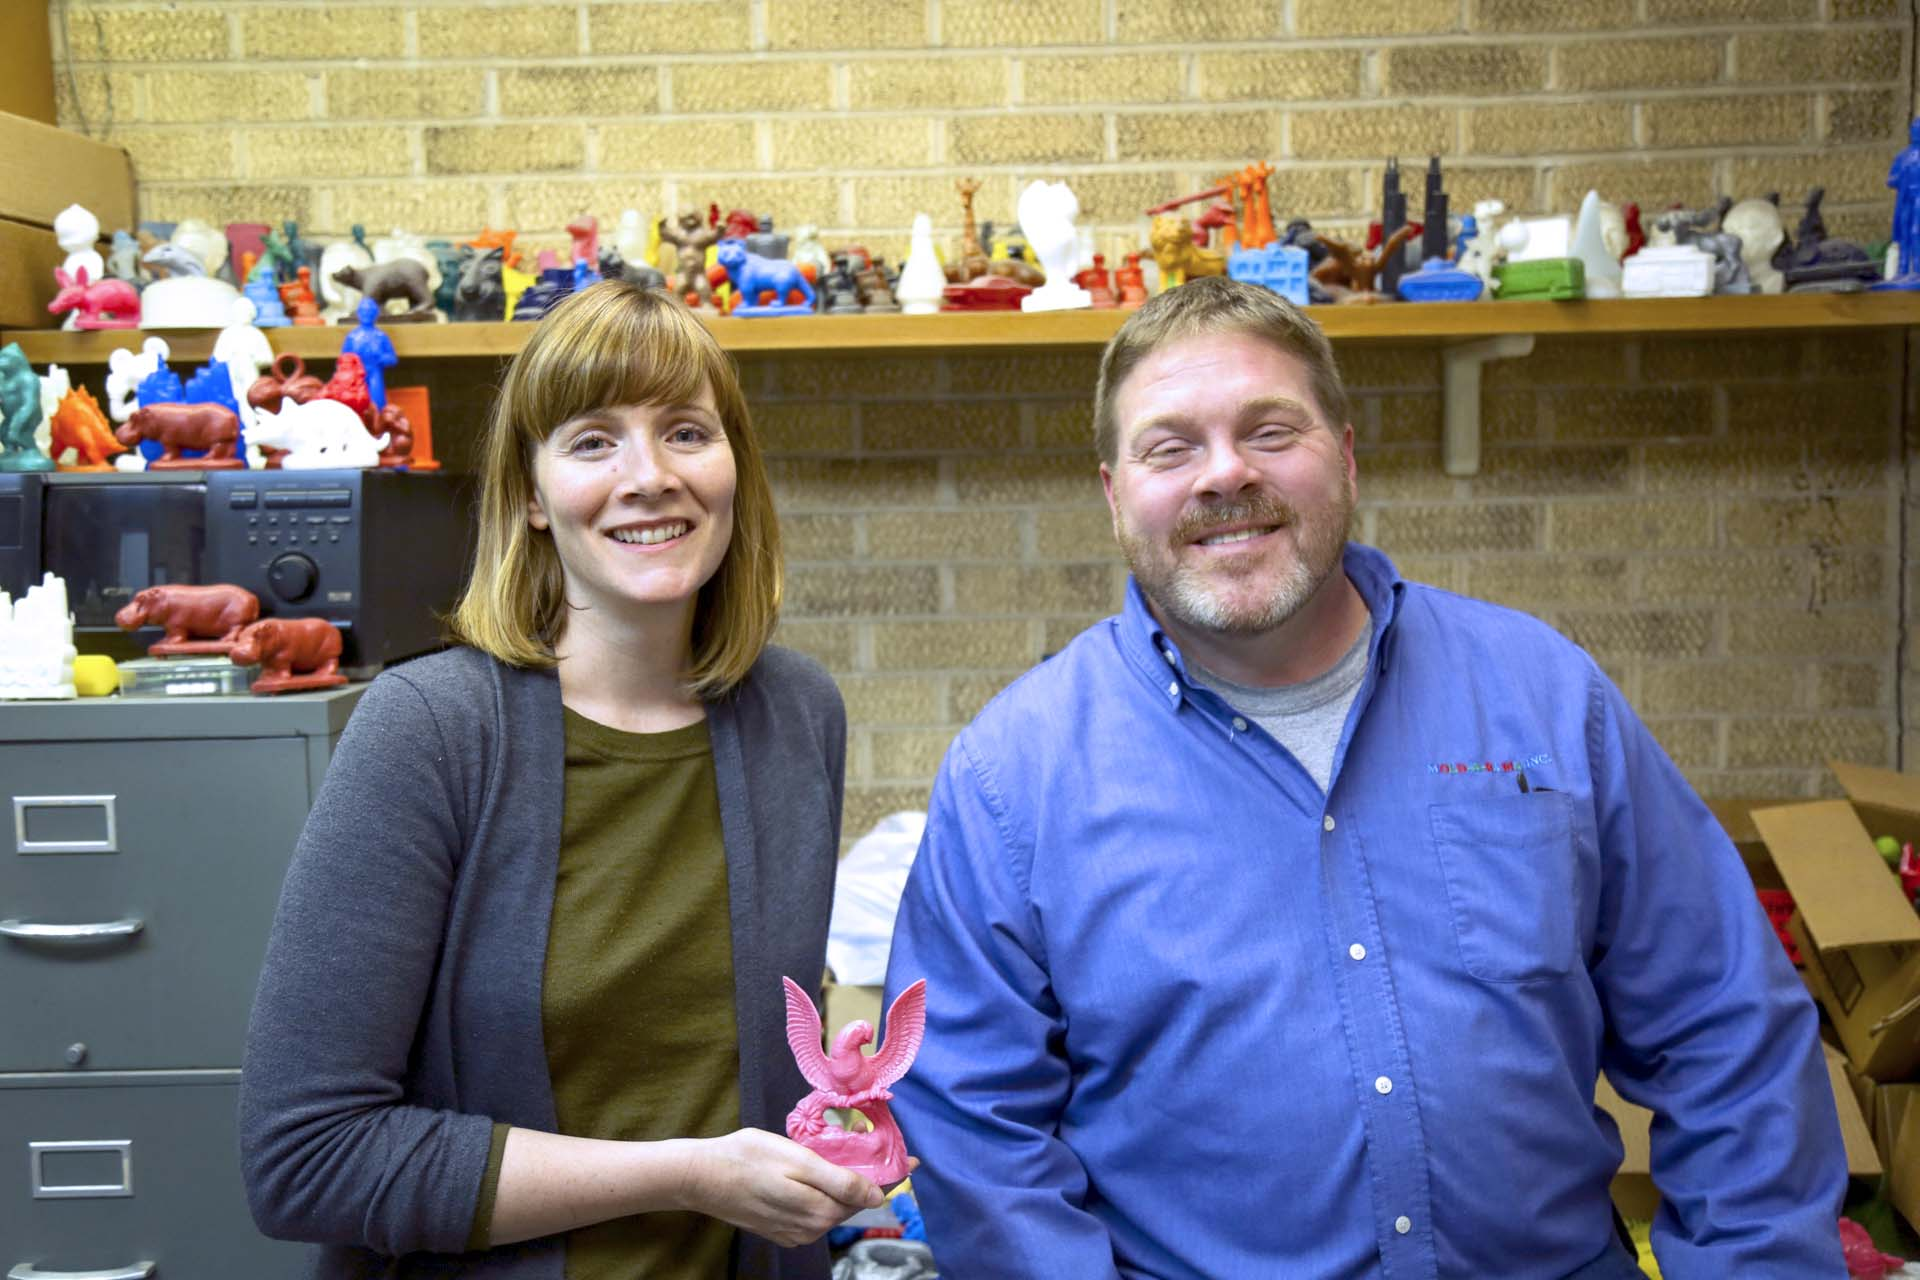 Questioner Julie Piacentine and Mold-A-Rama Inc. co-owner Paul Jones at the businesses' headquarters in Brookfield, Illinois. (John Fecile/WBEZ)